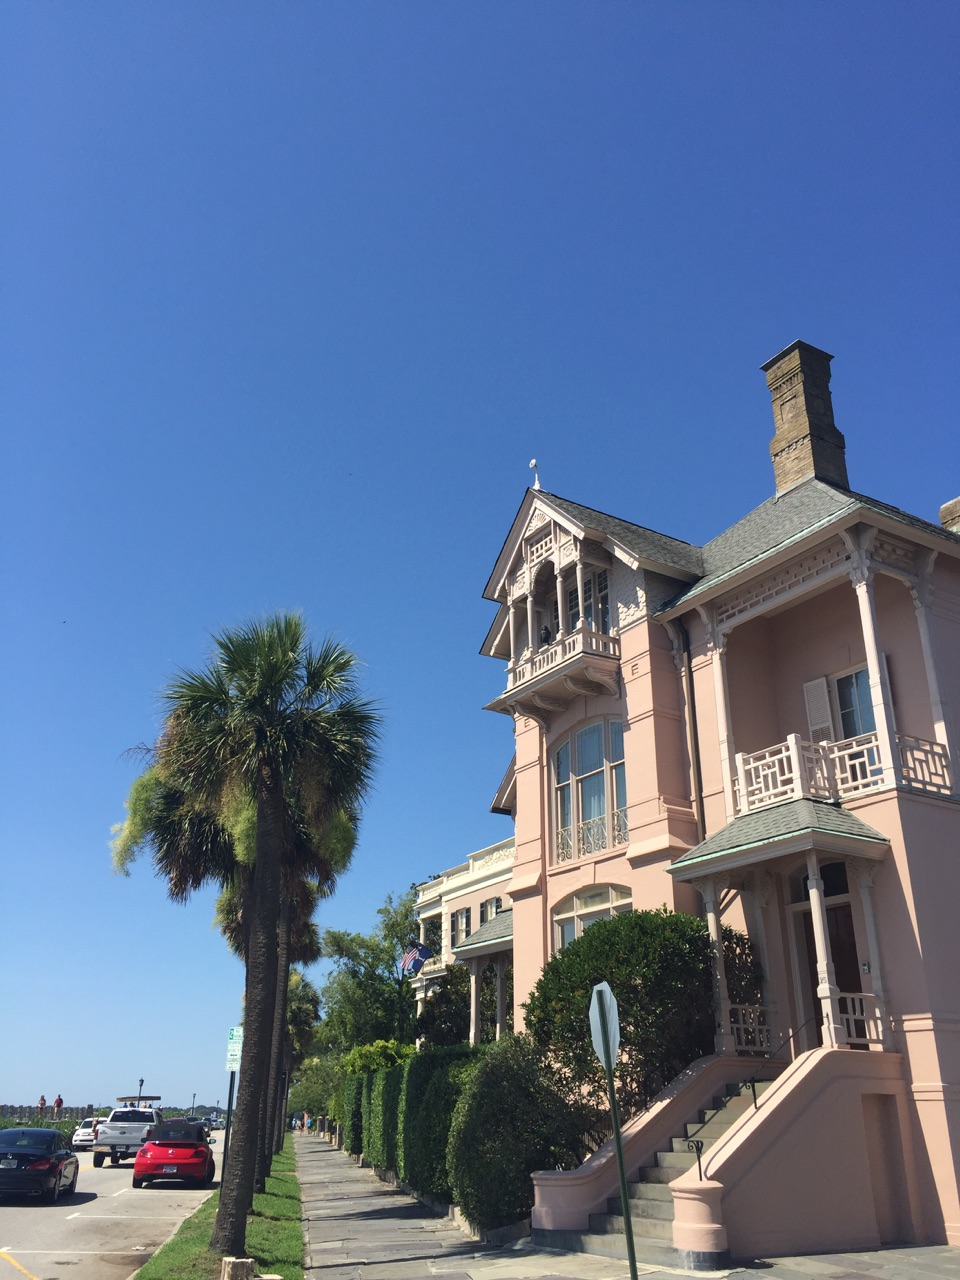 { Impromptu trip to Charleston. I feel in love with it, especially all the pink houses. Swoon! }